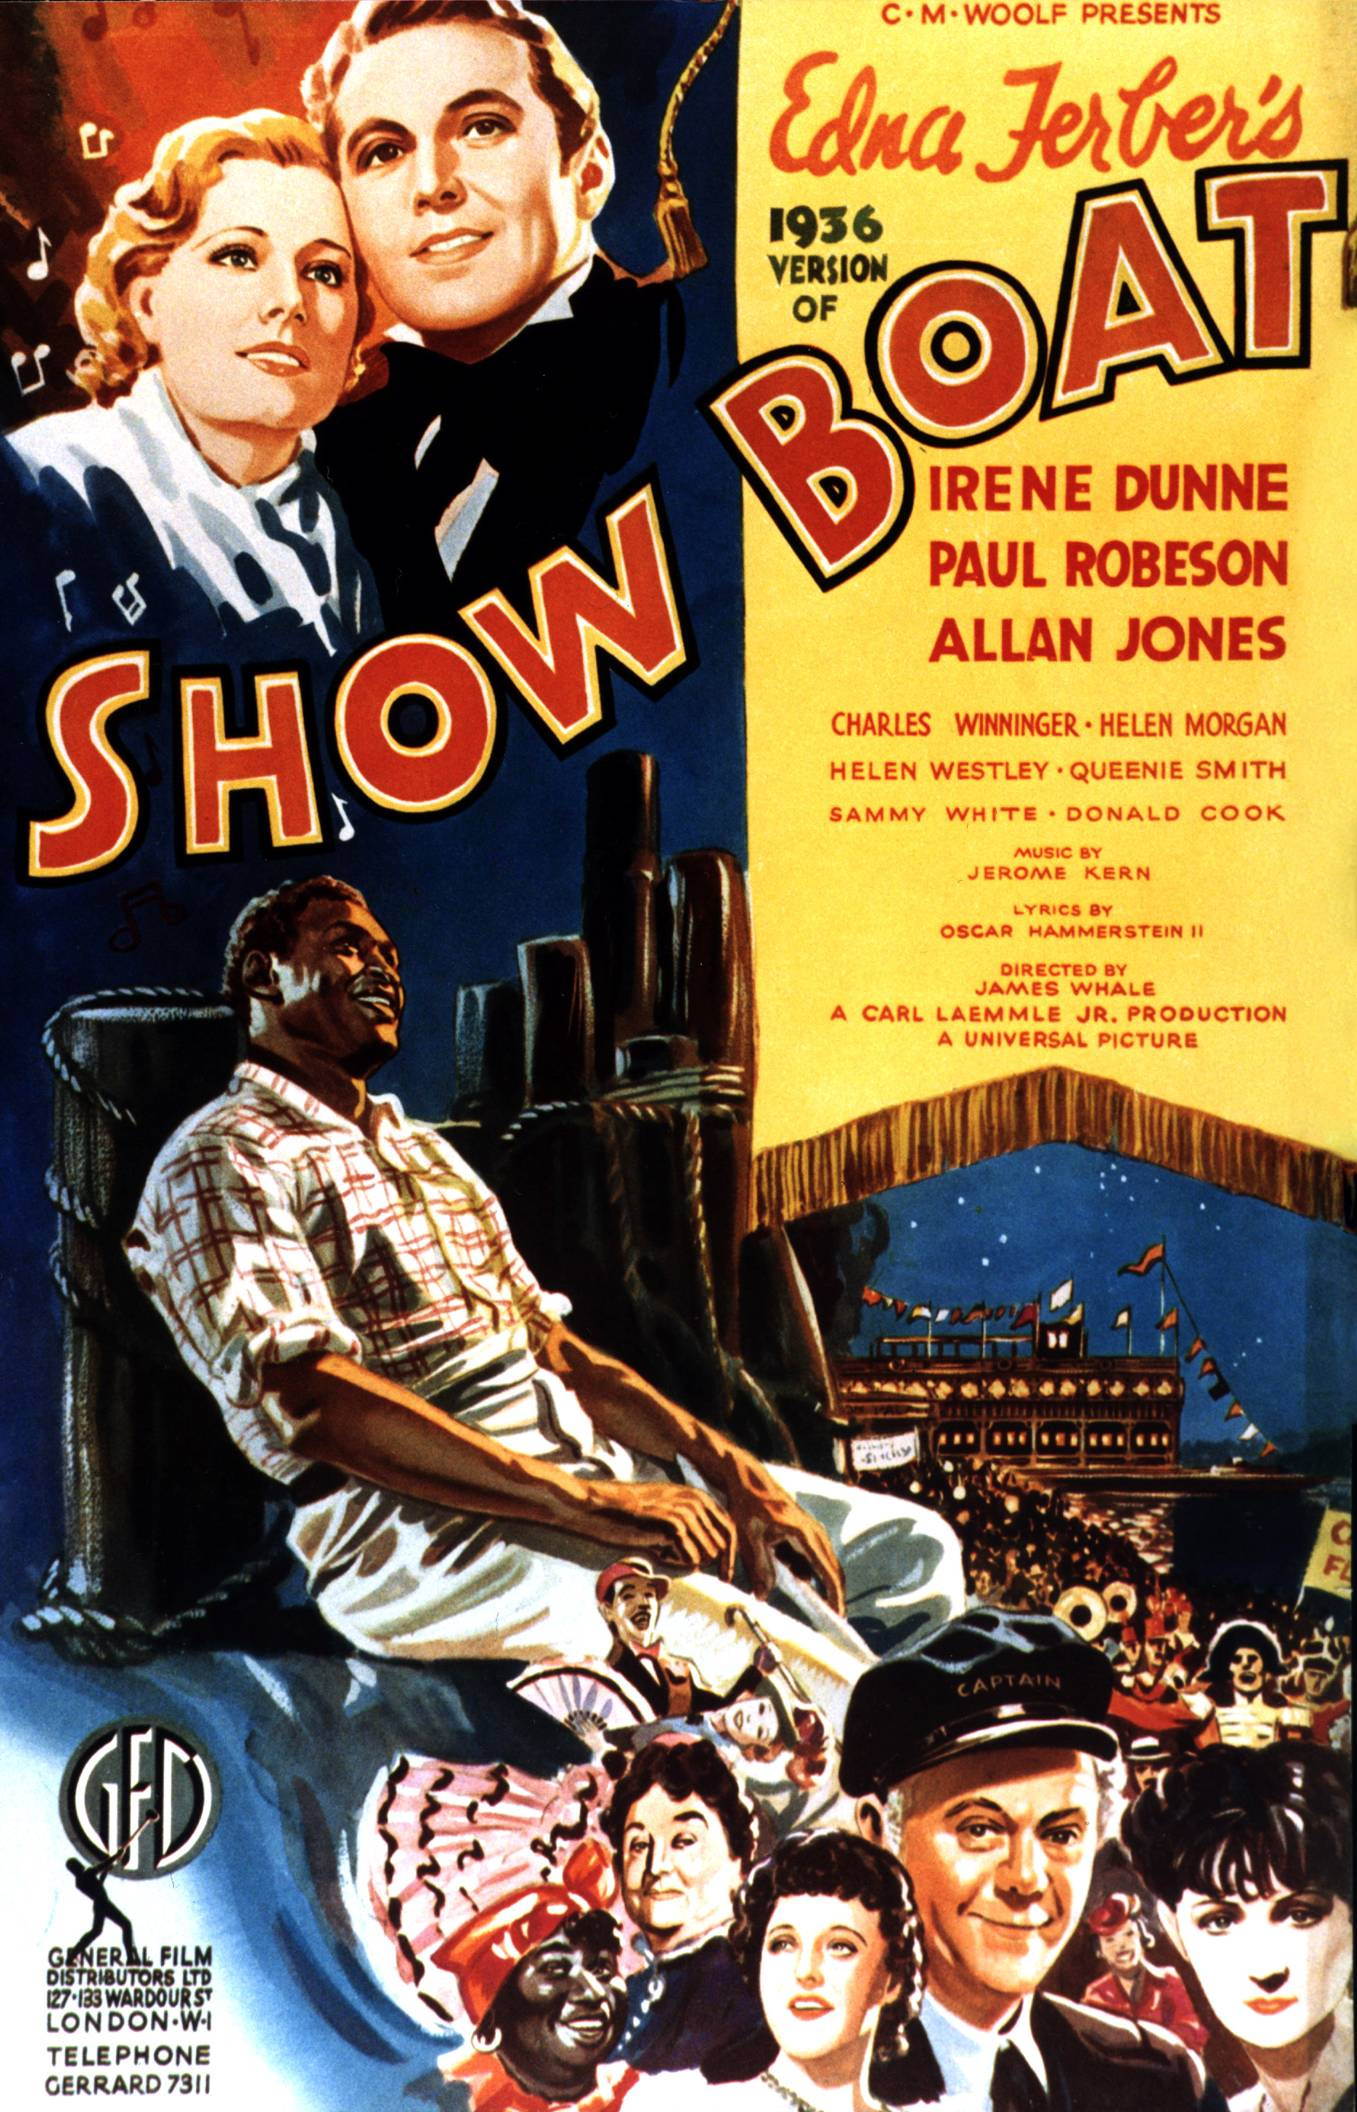 Show Boat movie poster